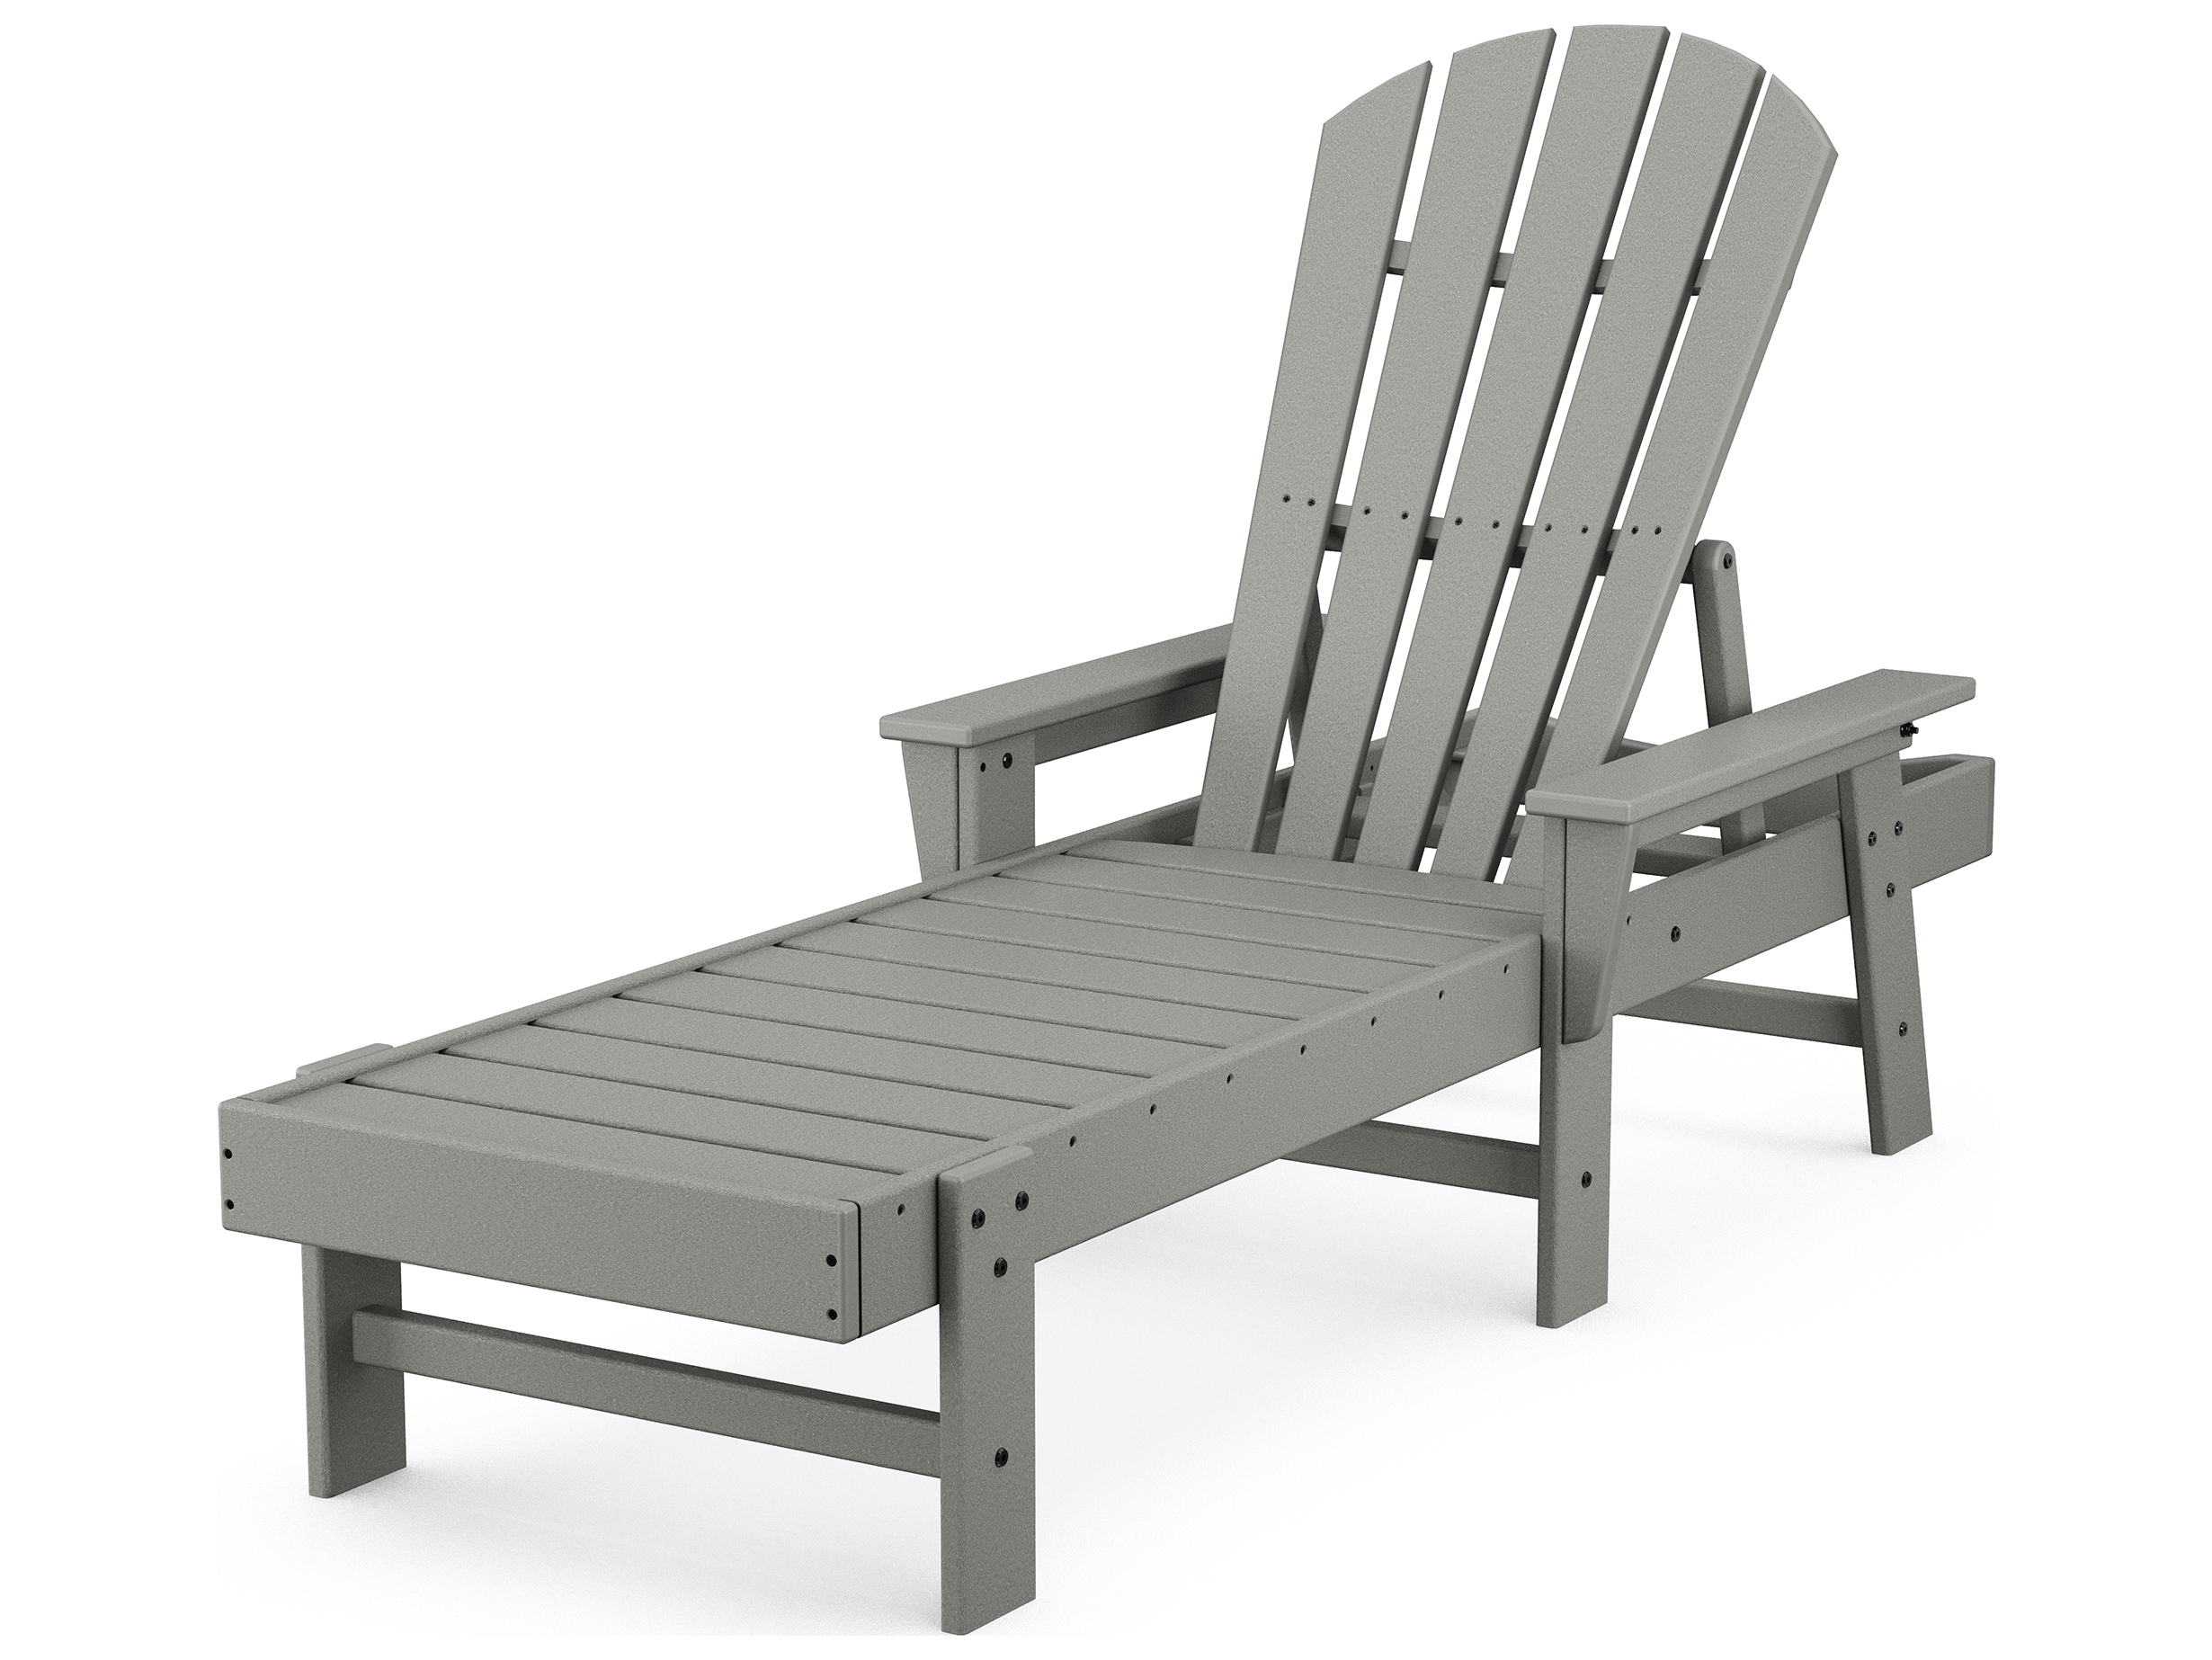 POLYWOOD South Beach Recycled Plastic Chaise Lounge